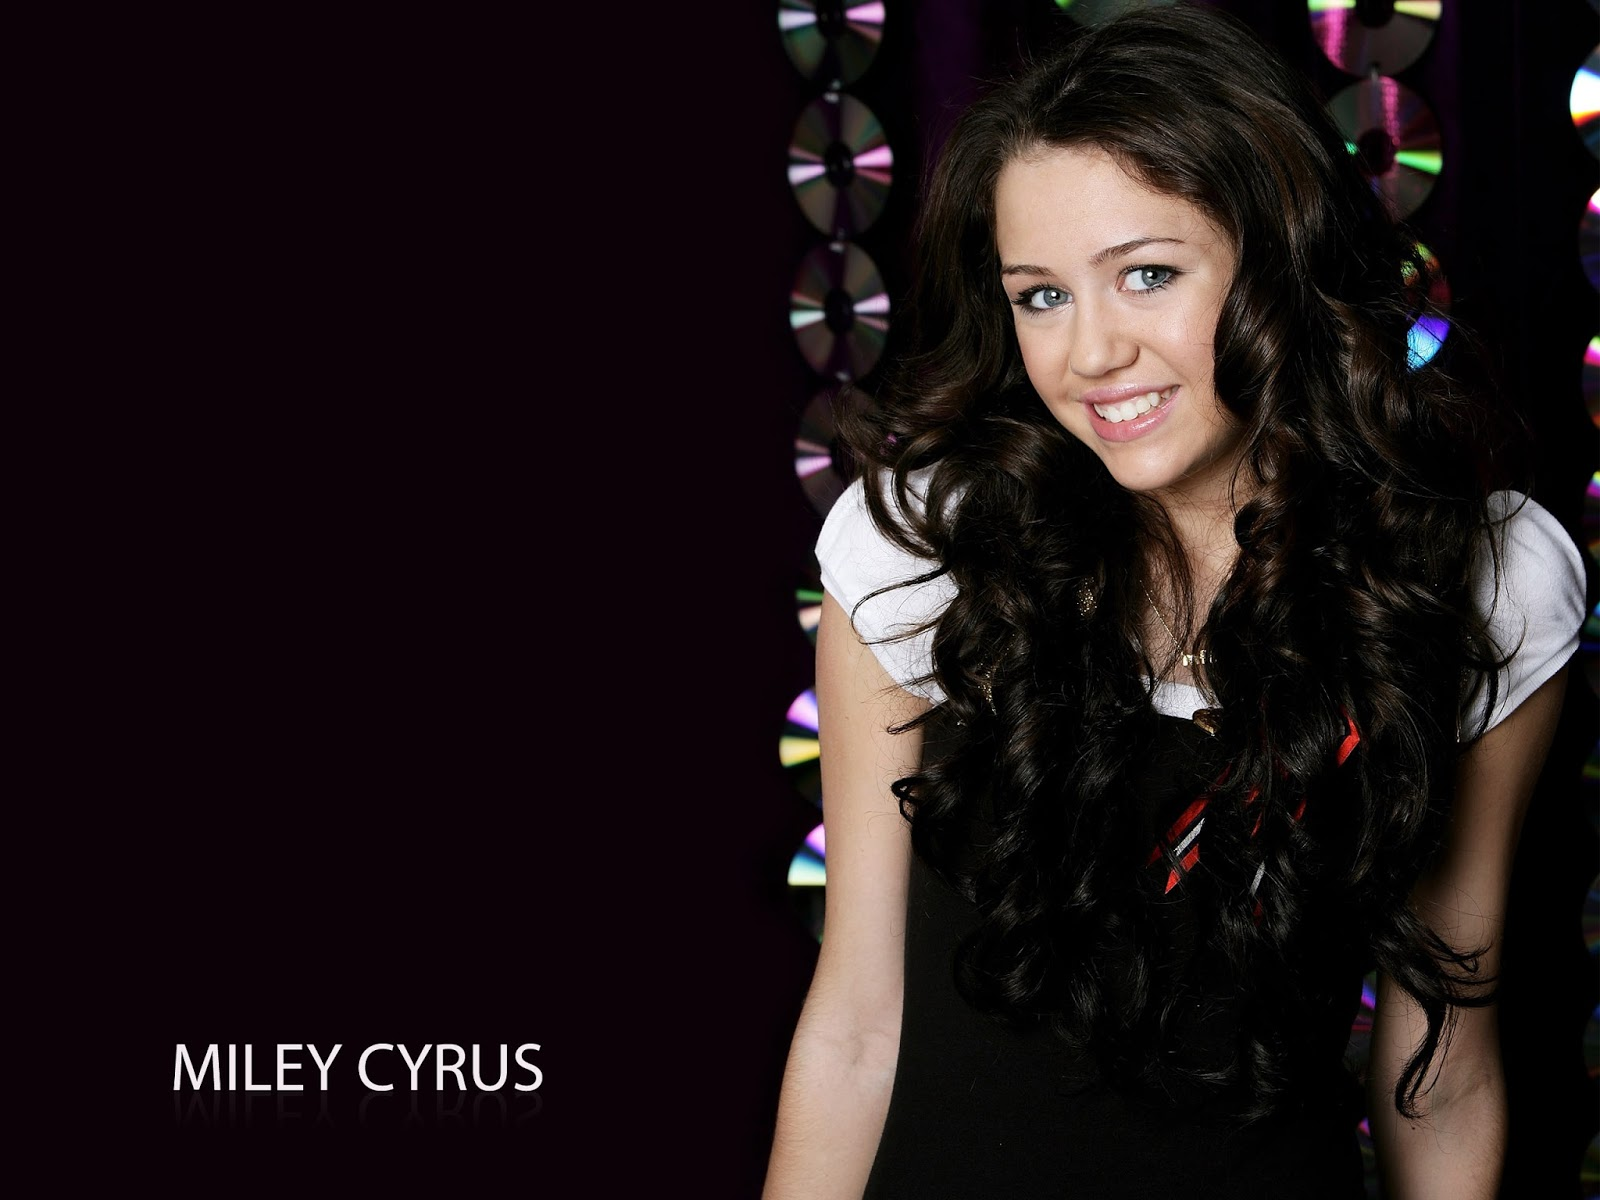 hd miley cyrus wallpapers - photo #3